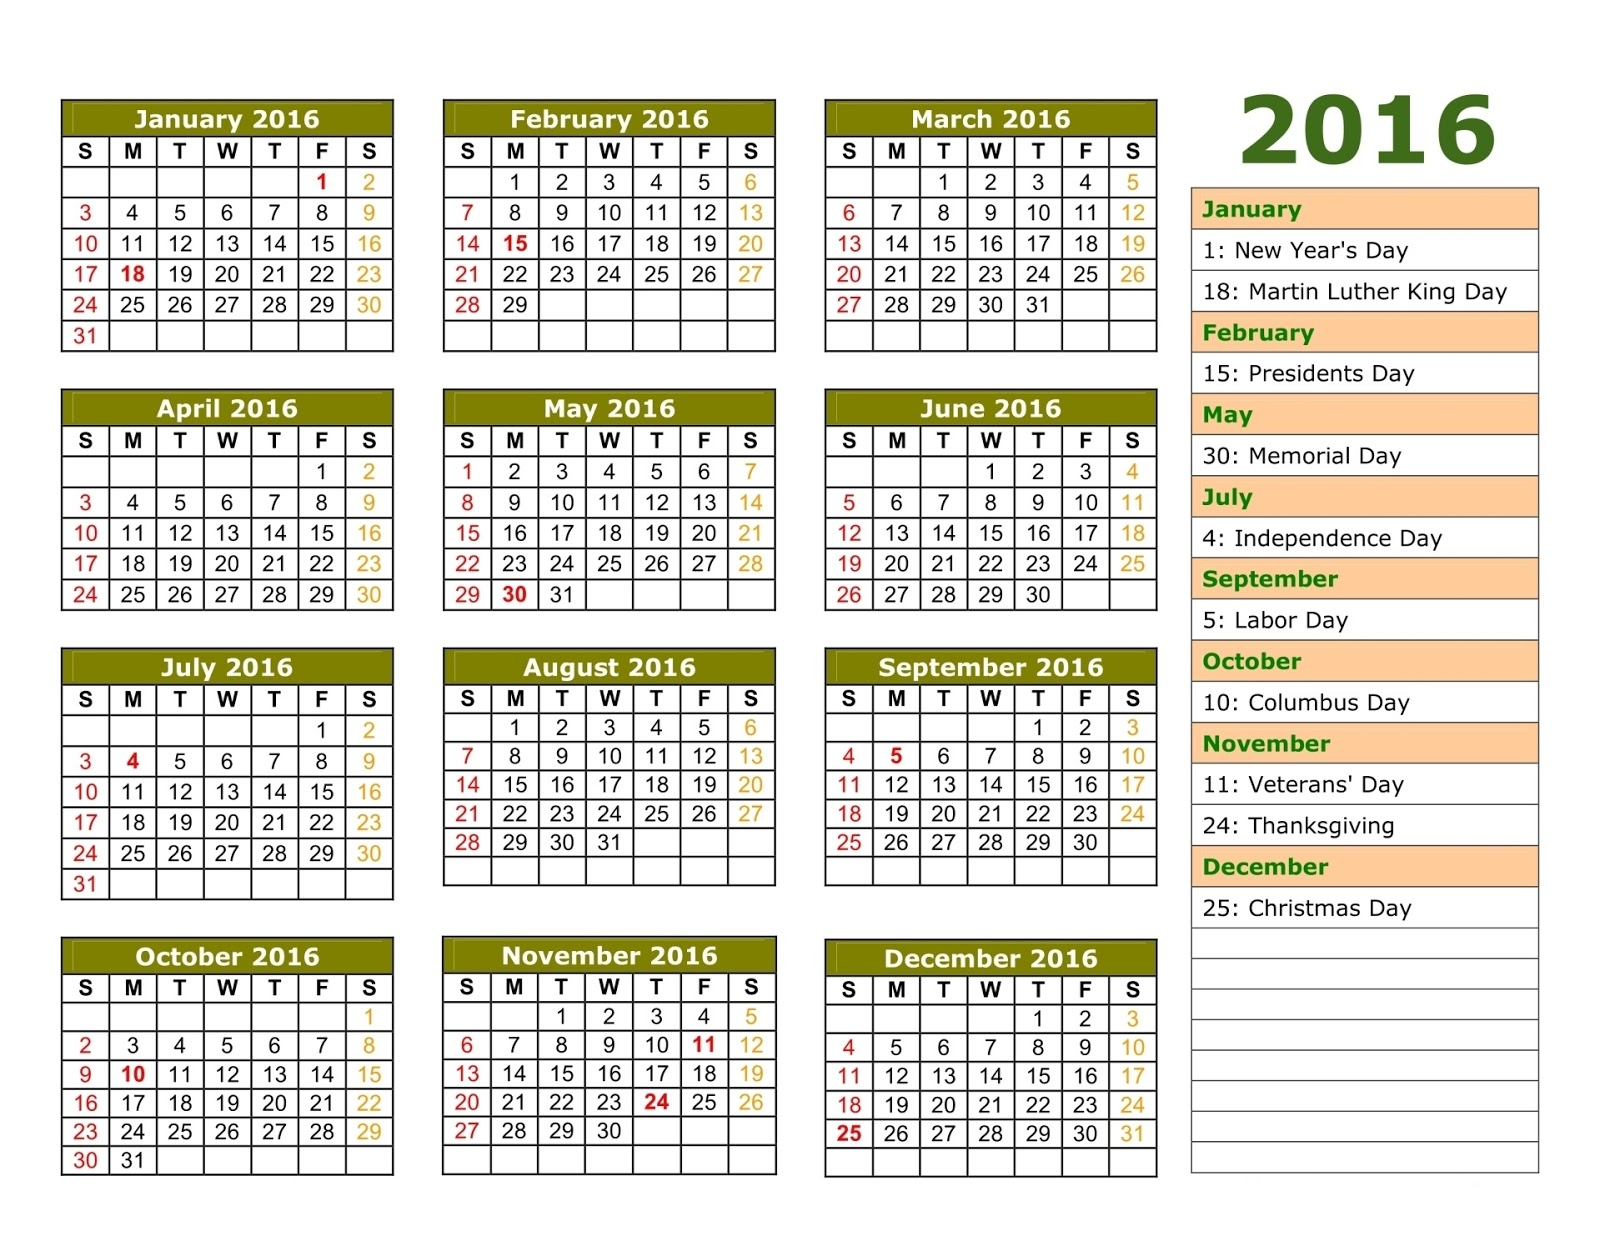 Free]^ Printable Calendar 2016: Printable 2016 Calendar with US ...